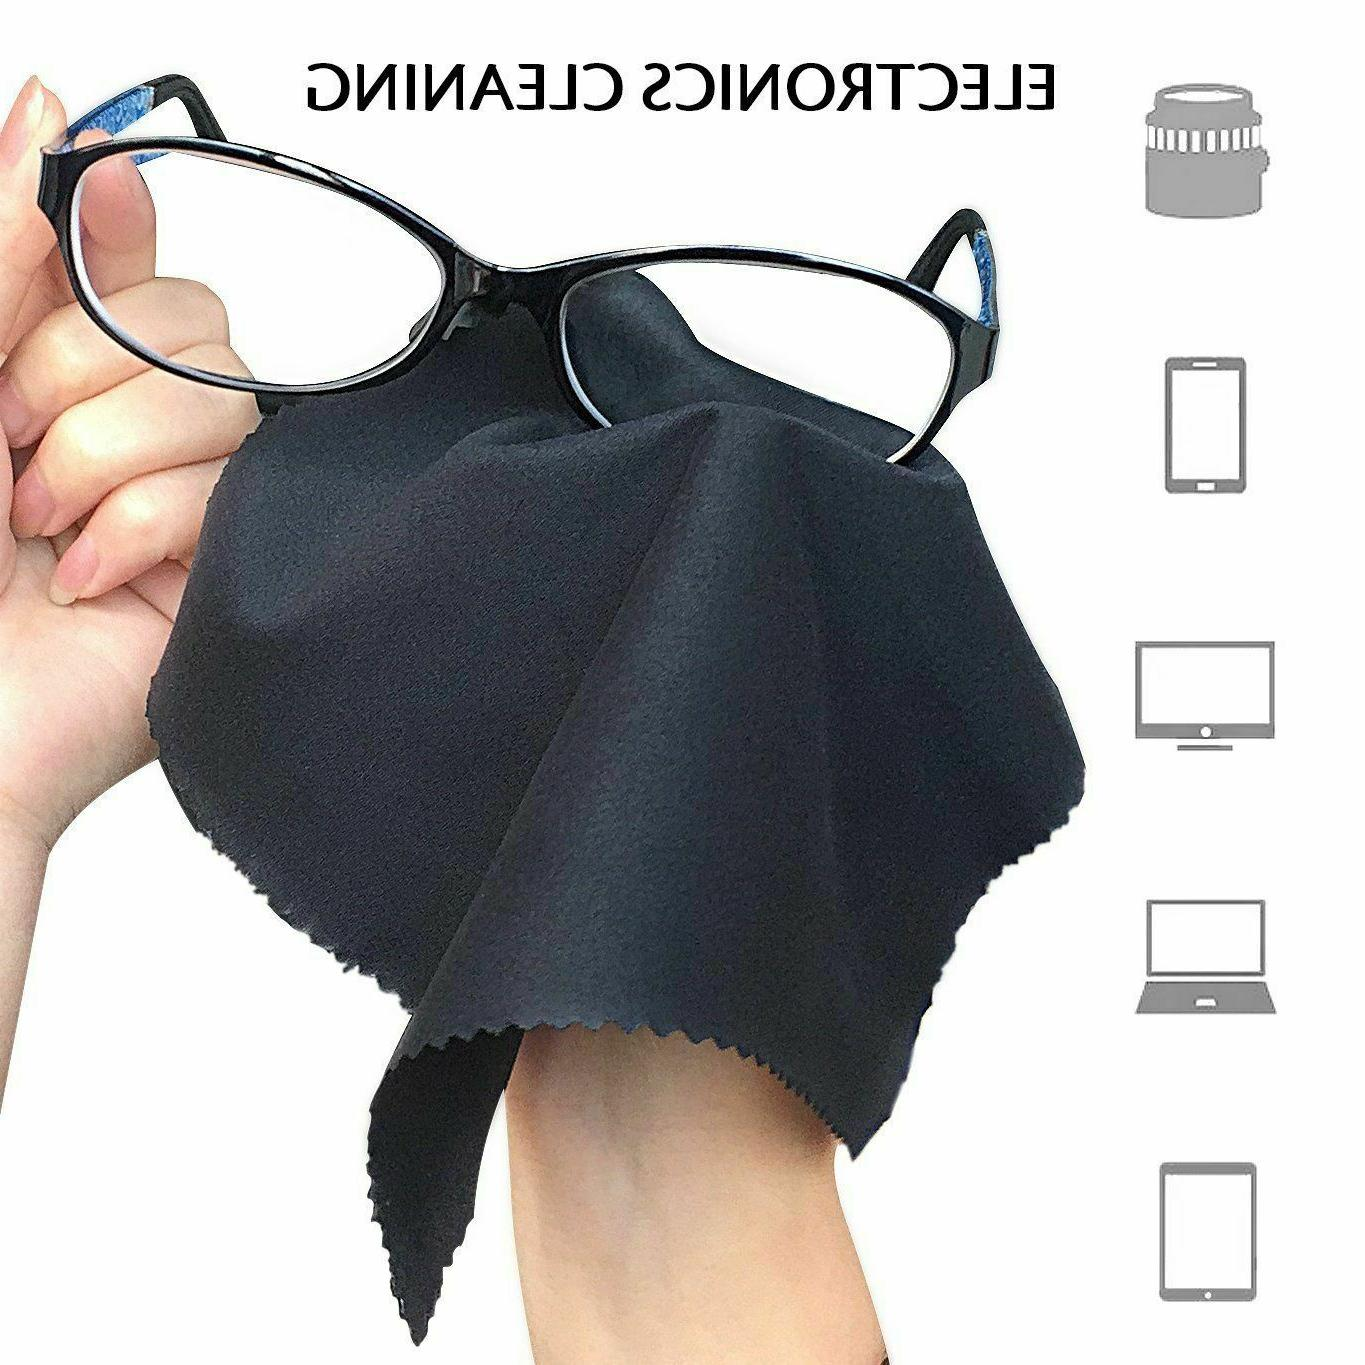 20x Cleaning Cloth Camera Lens